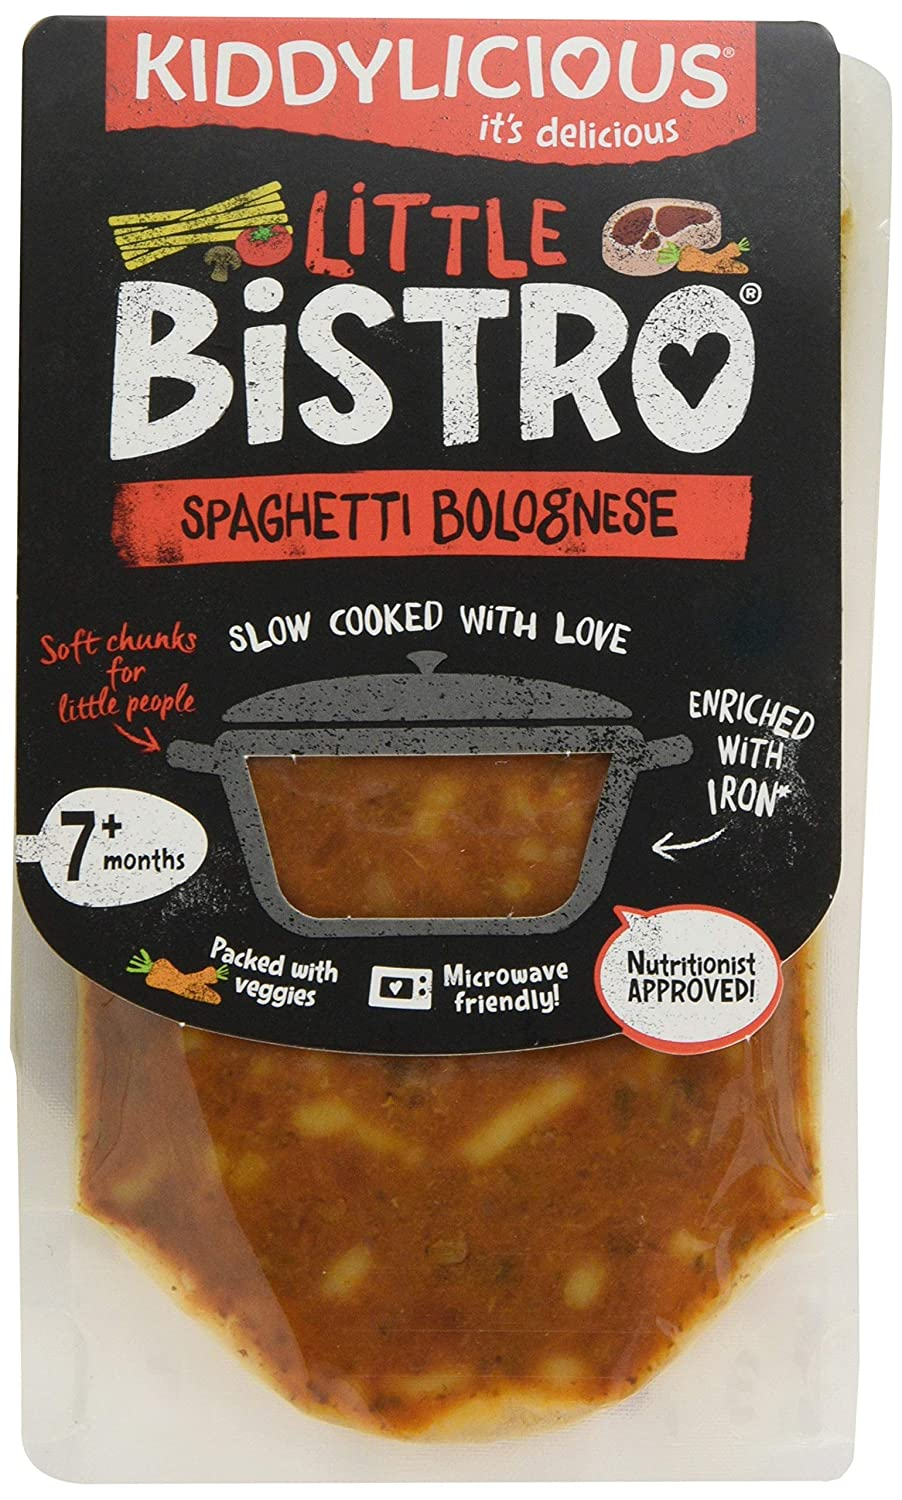 Kiddylicious Little Bistro Spaghetti Bolognese Stage 2 130g - Pack of 7 The Kids Food Co. 7080220